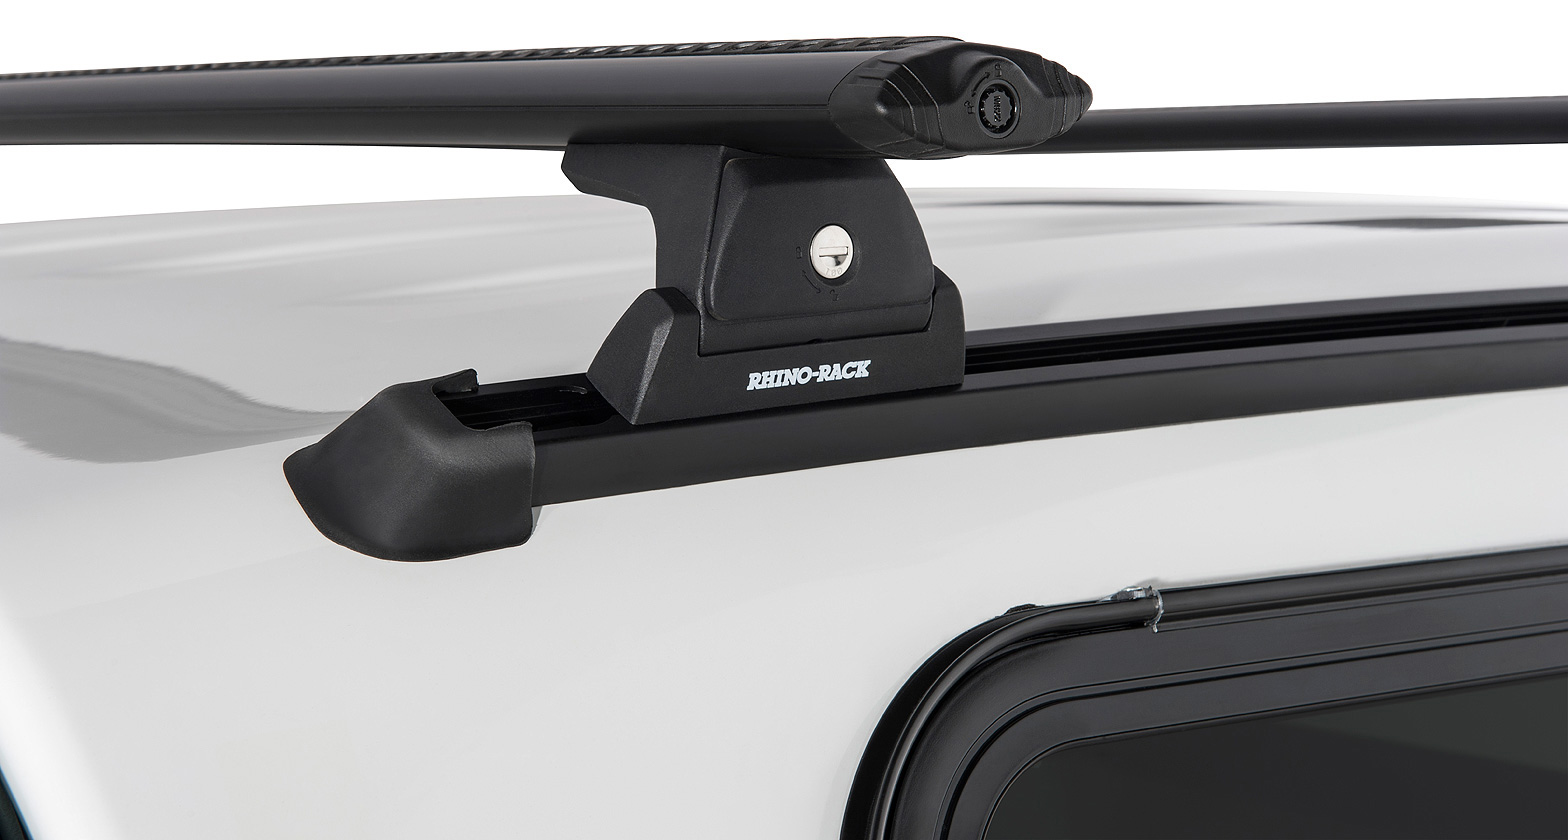 Ja6378 Vortex Rlt600 Trackmount Black 2 Bar Roof Rack